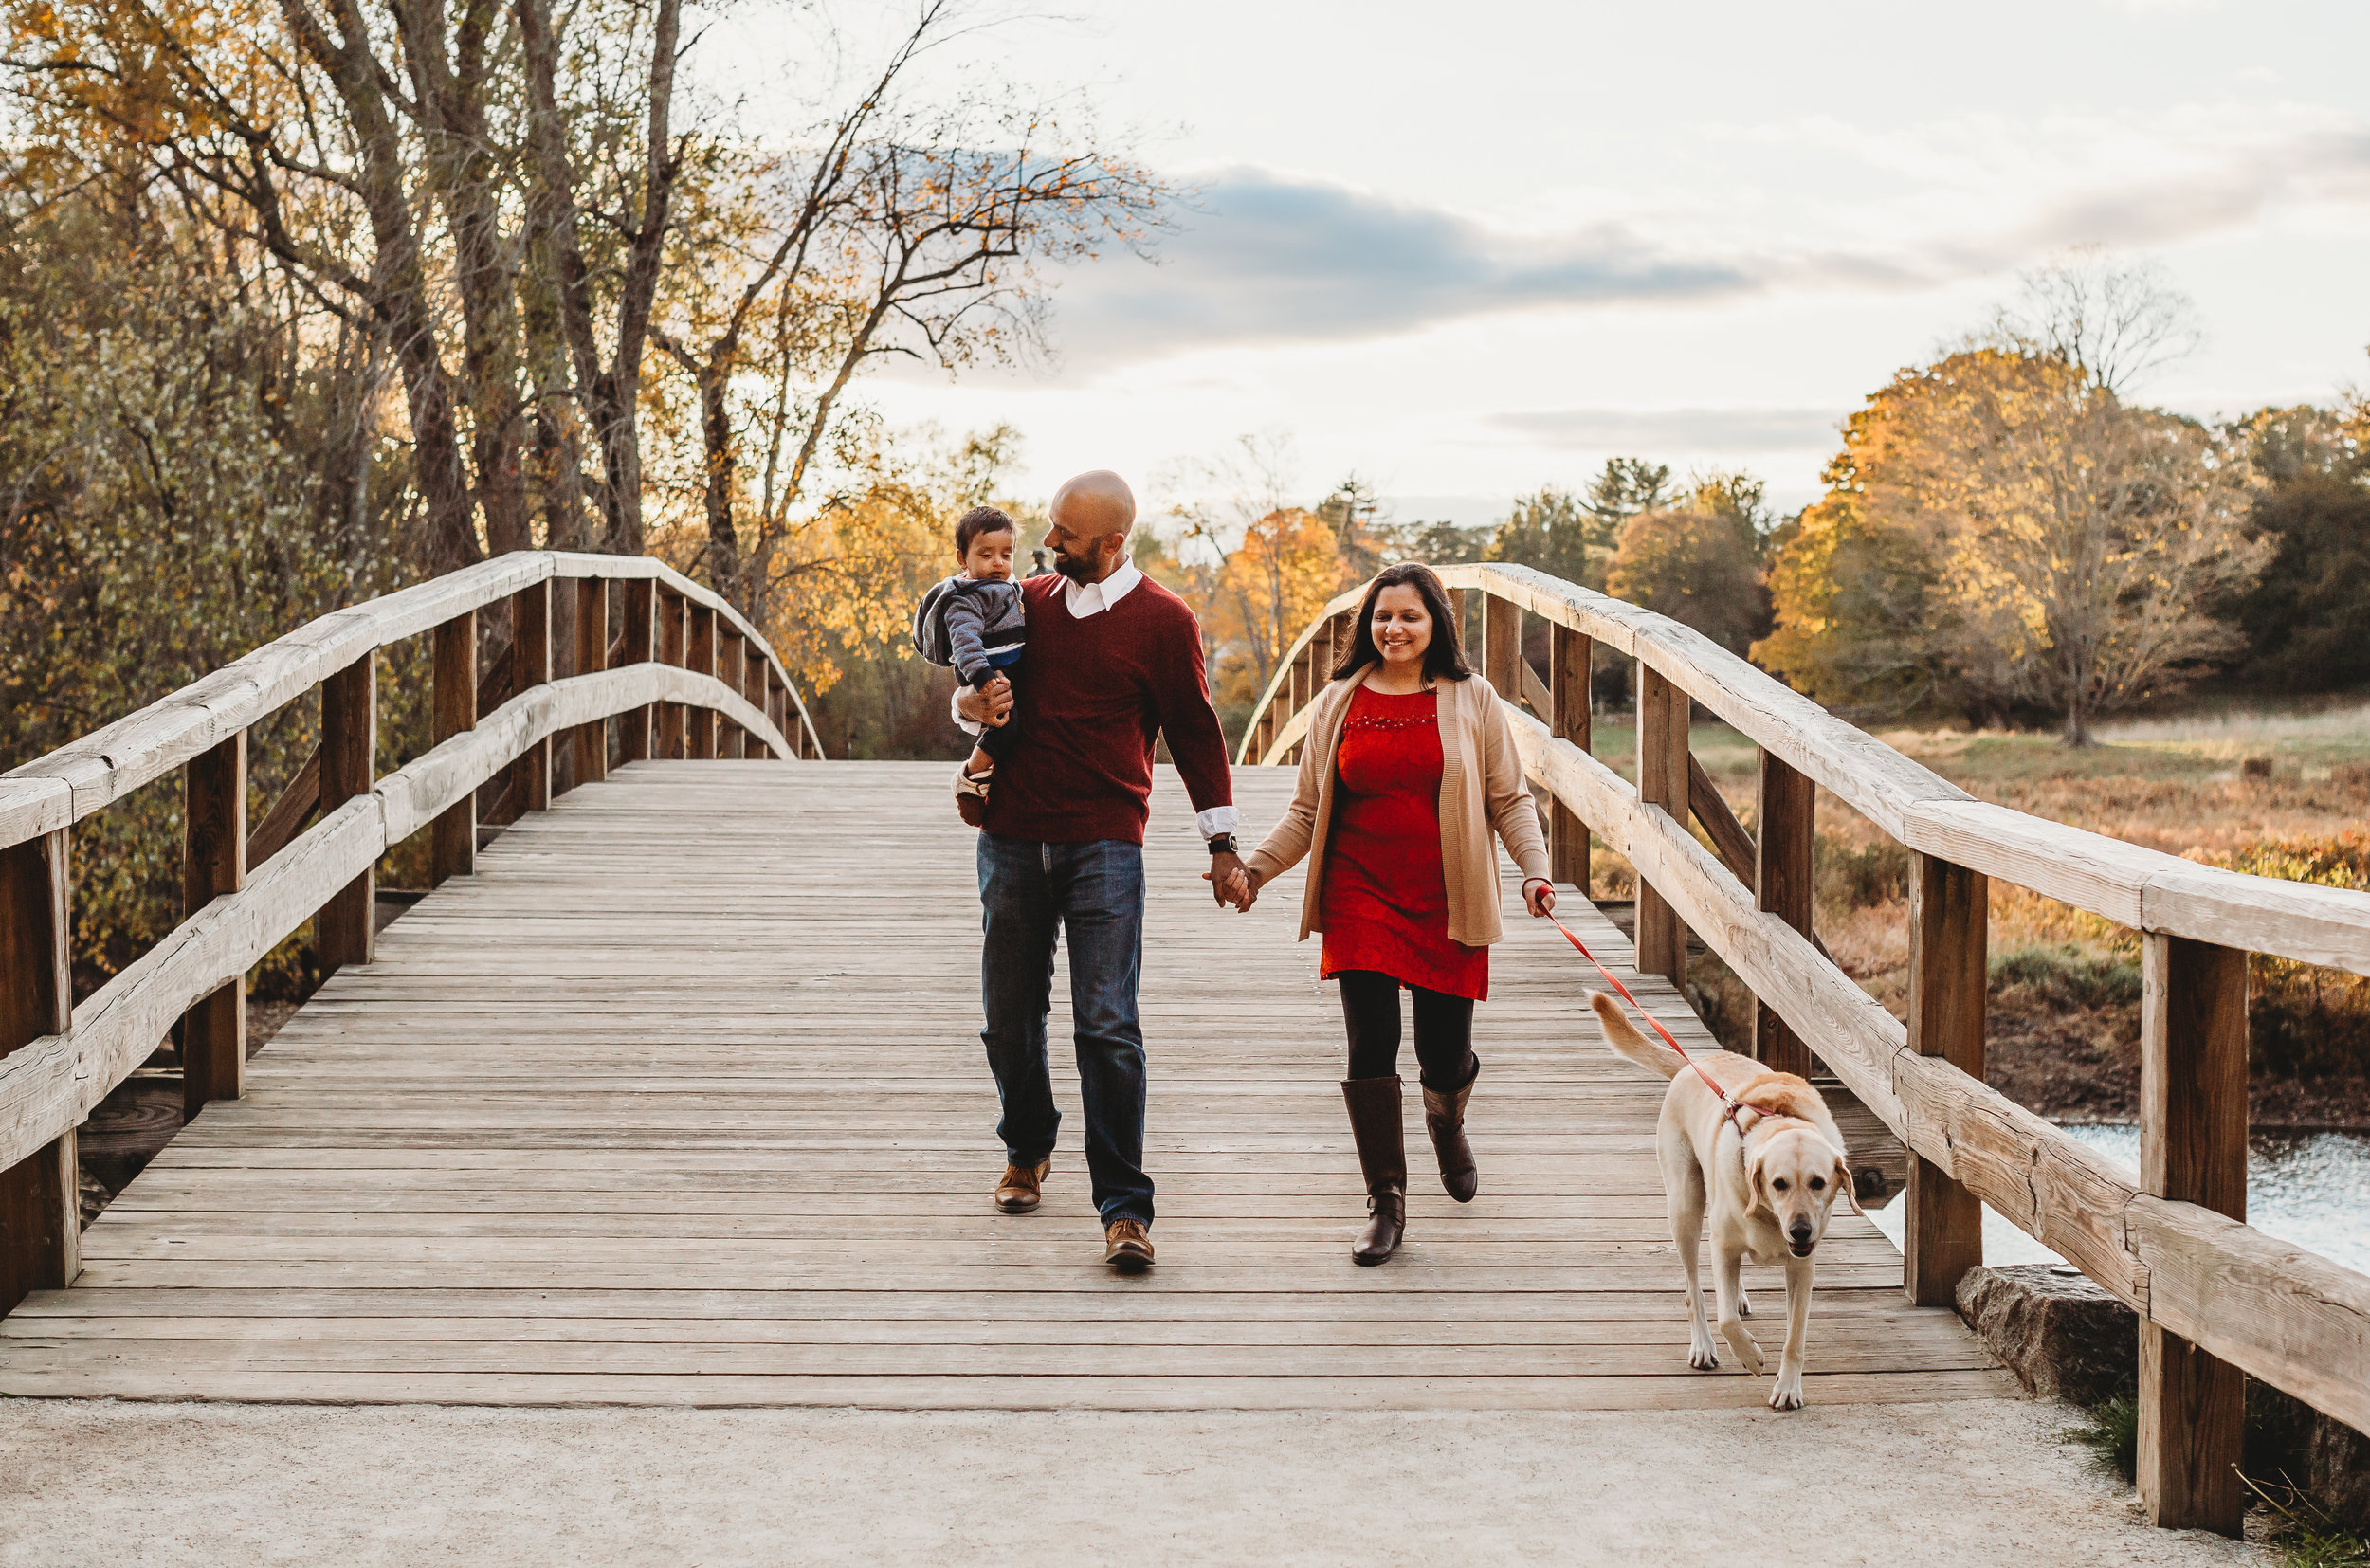 It's not just kids who look better with movement! Parents look more comfortable and natural with walking and moving prompts as well. Old North Bridge, Concord, Massachusetts. Organic, candid lifestyle photography for families in Greater Boston.